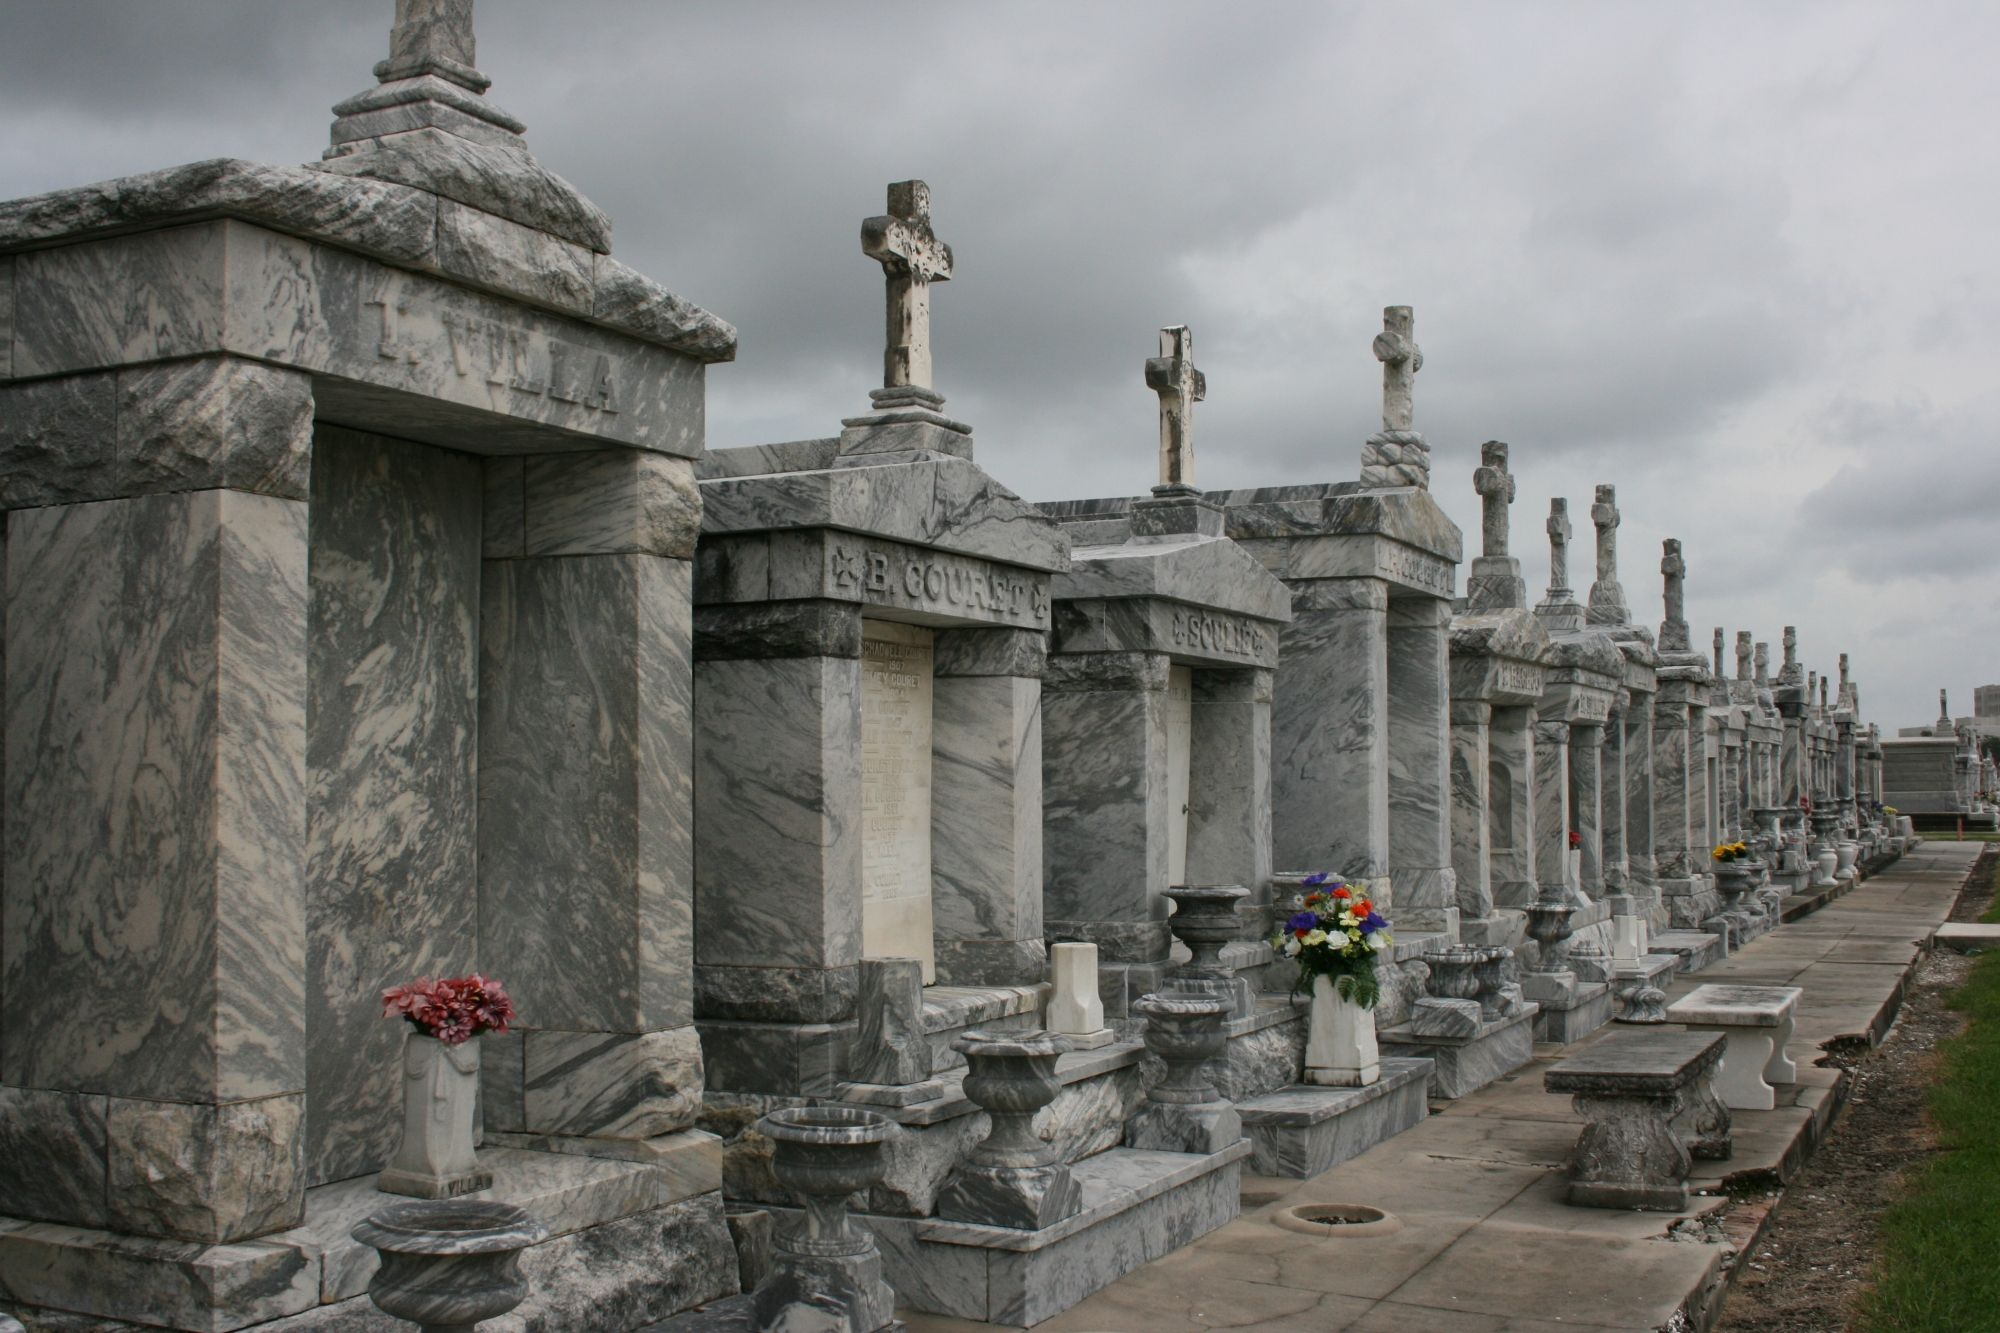 Stunning New Orleans cemeteries you can't miss | New orleans ... on knoxville cemetery map, vicksburg cemetery map, liverpool cemetery map, bushnell cemetery map, uvalde cemetery map, metairie cemetery map, california cemetery map, natchez cemetery map, lowell cemetery map, edmonton cemetery map, dublin cemetery map, chicago cemetery map, elmwood cemetery map, lafayette cemetery map, riverside cemetery map, paris cemetery map, glendale cemetery map, lubbock cemetery map, new orleans cemeteries, oregon cemetery map,